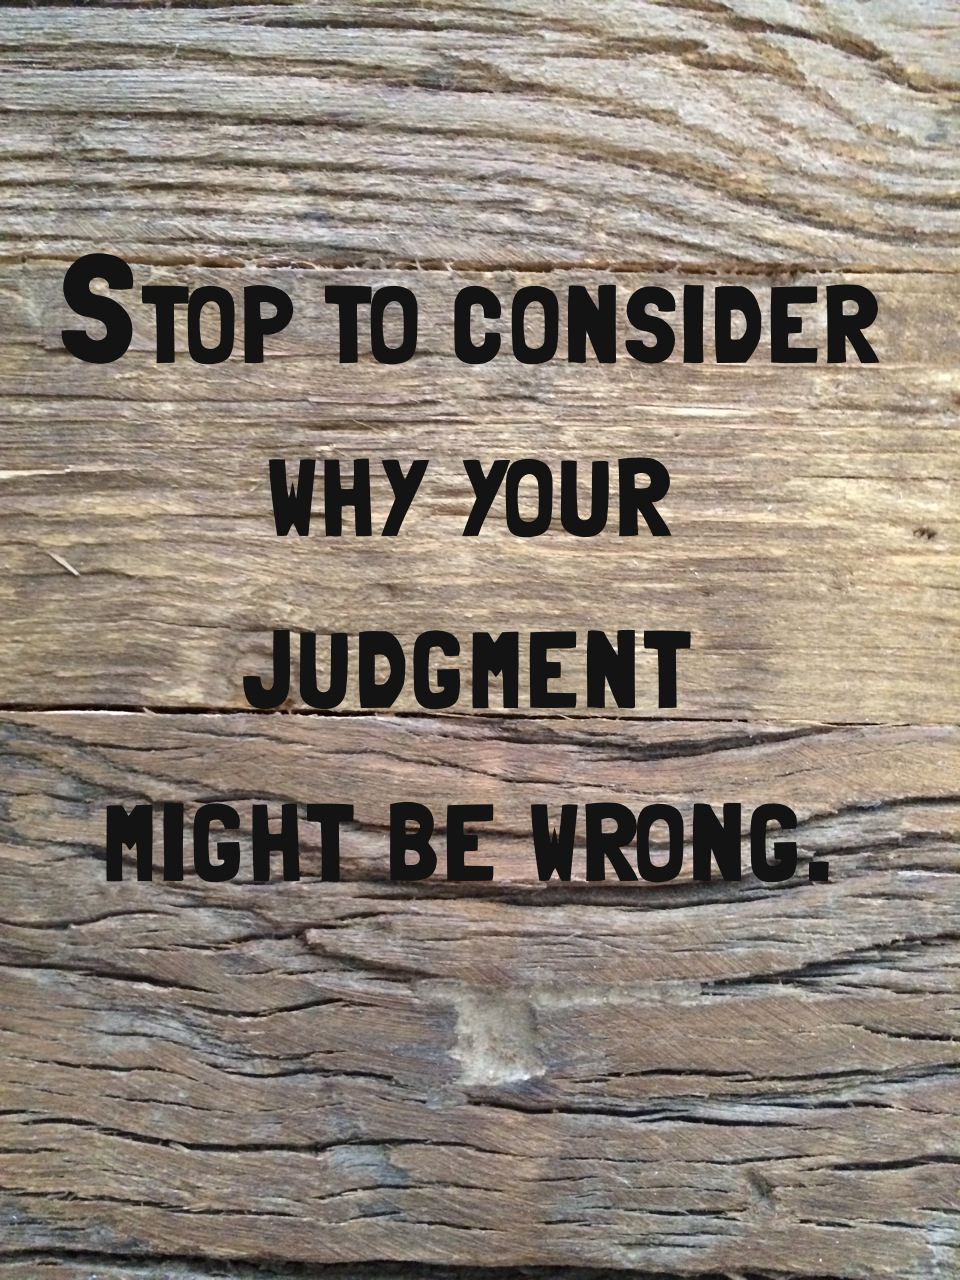 Stop to consider why your judgment might be wrong.png